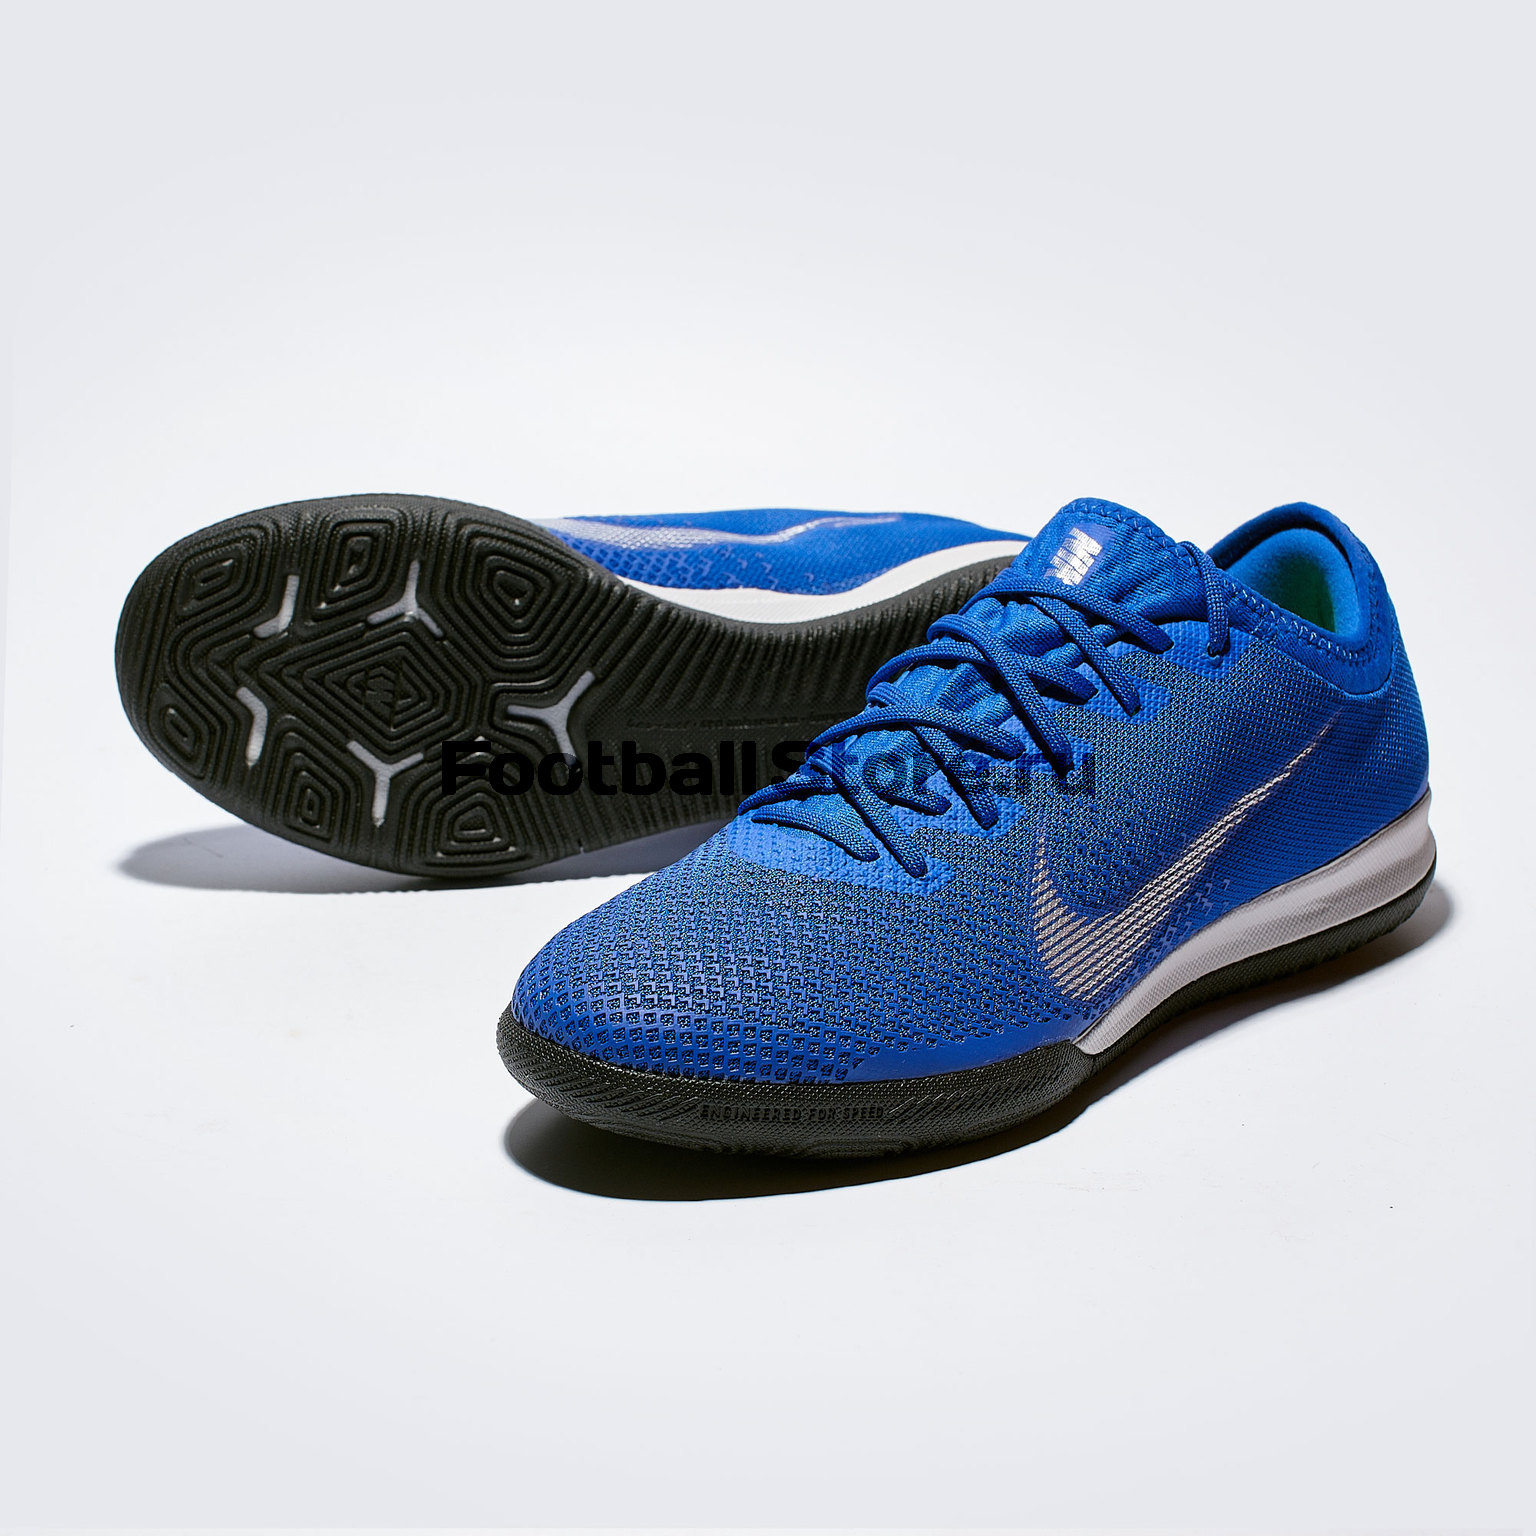 Футзалки Nike Vapor 12 Pro IC AH7387-400 nike vapor pro low d men s detachable football cleats